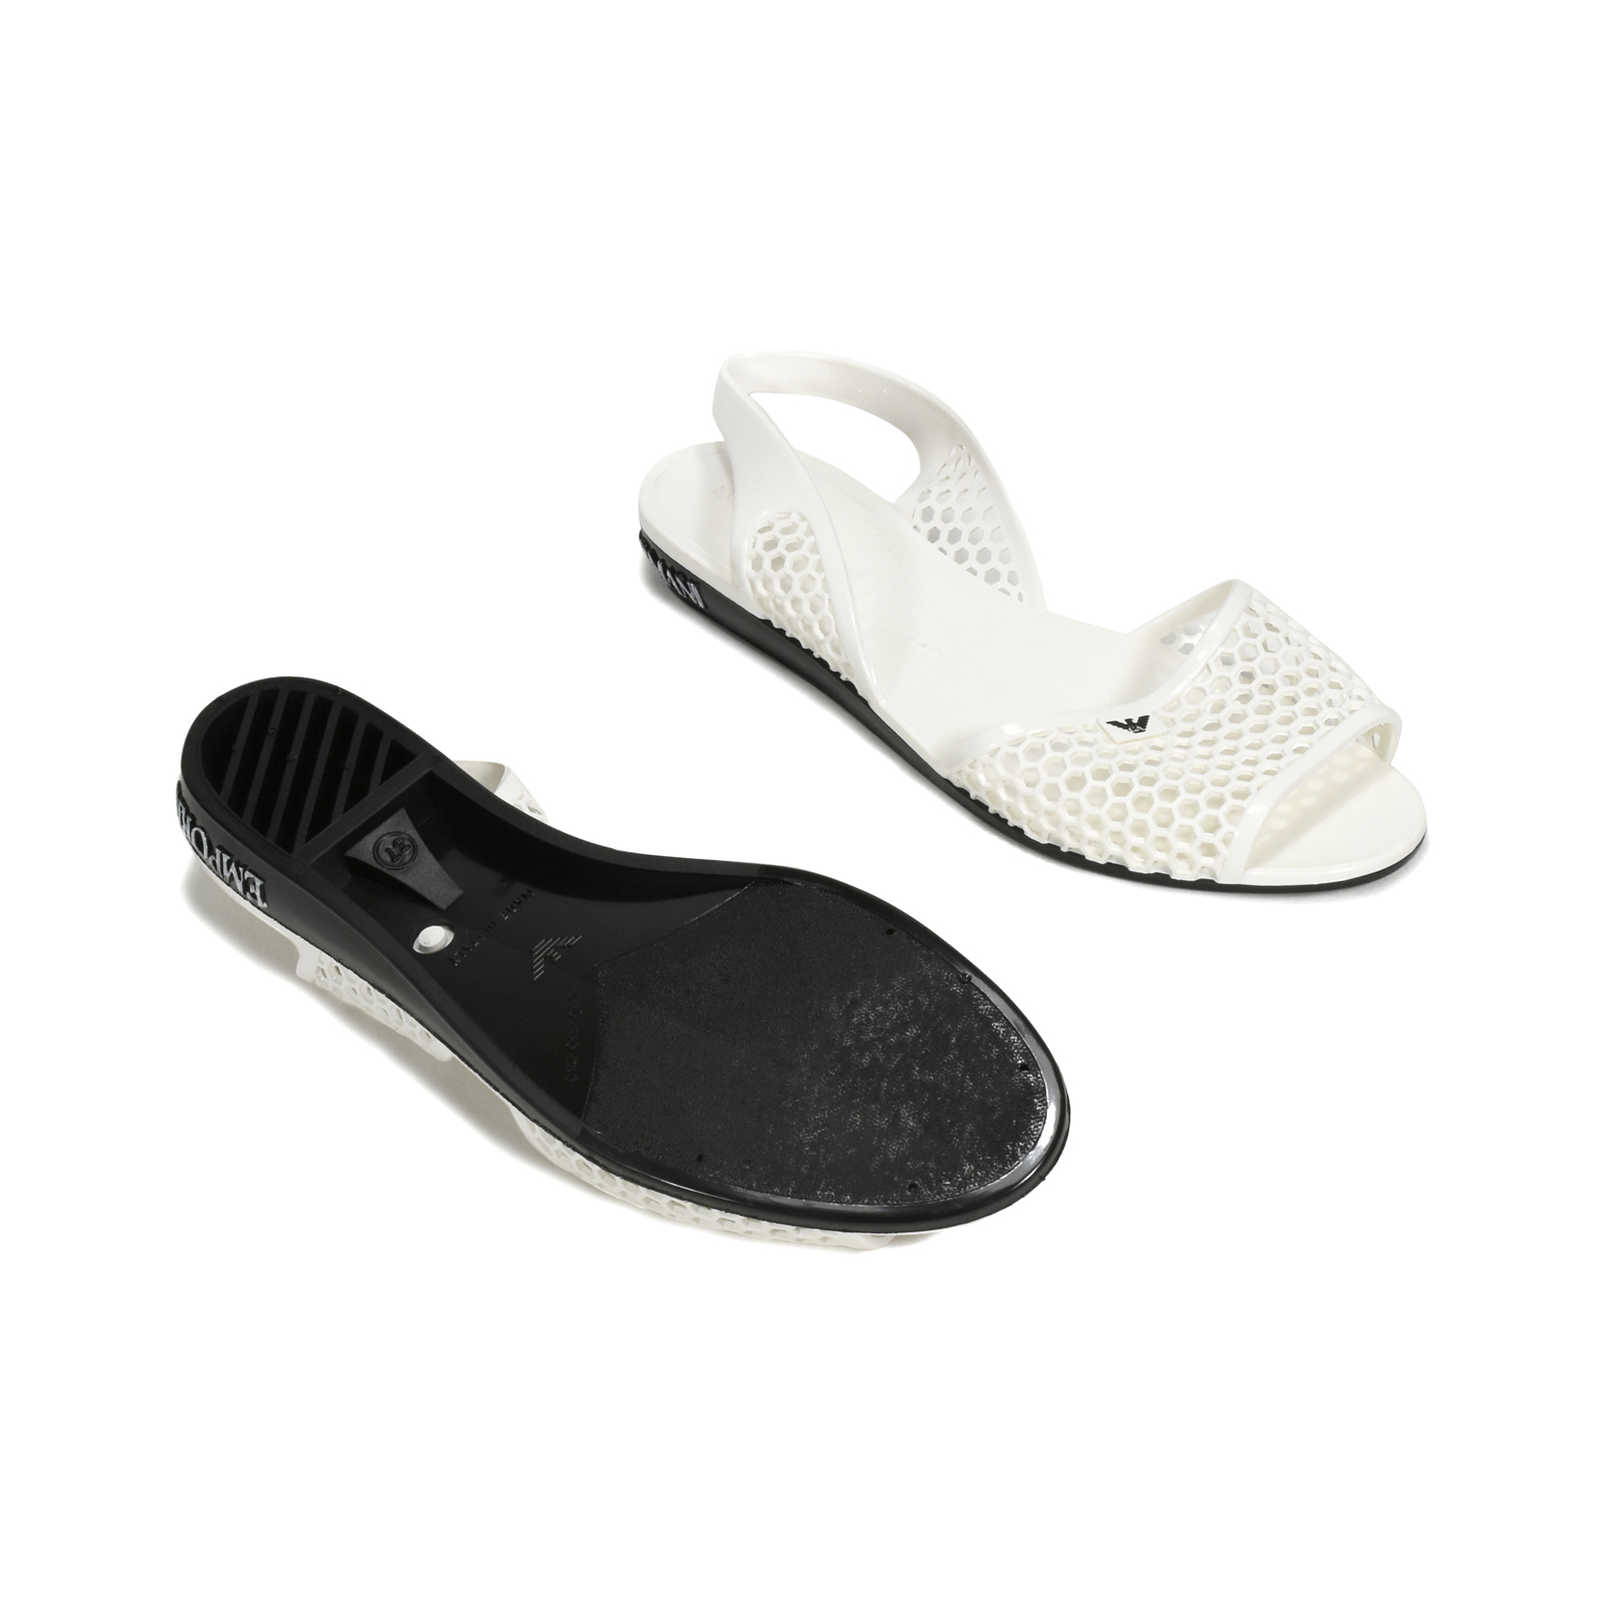 868f46543 ... Authentic Second Hand Emporio Armani Perforated Jelly Slingbacks  (PSS-369-00040) ...